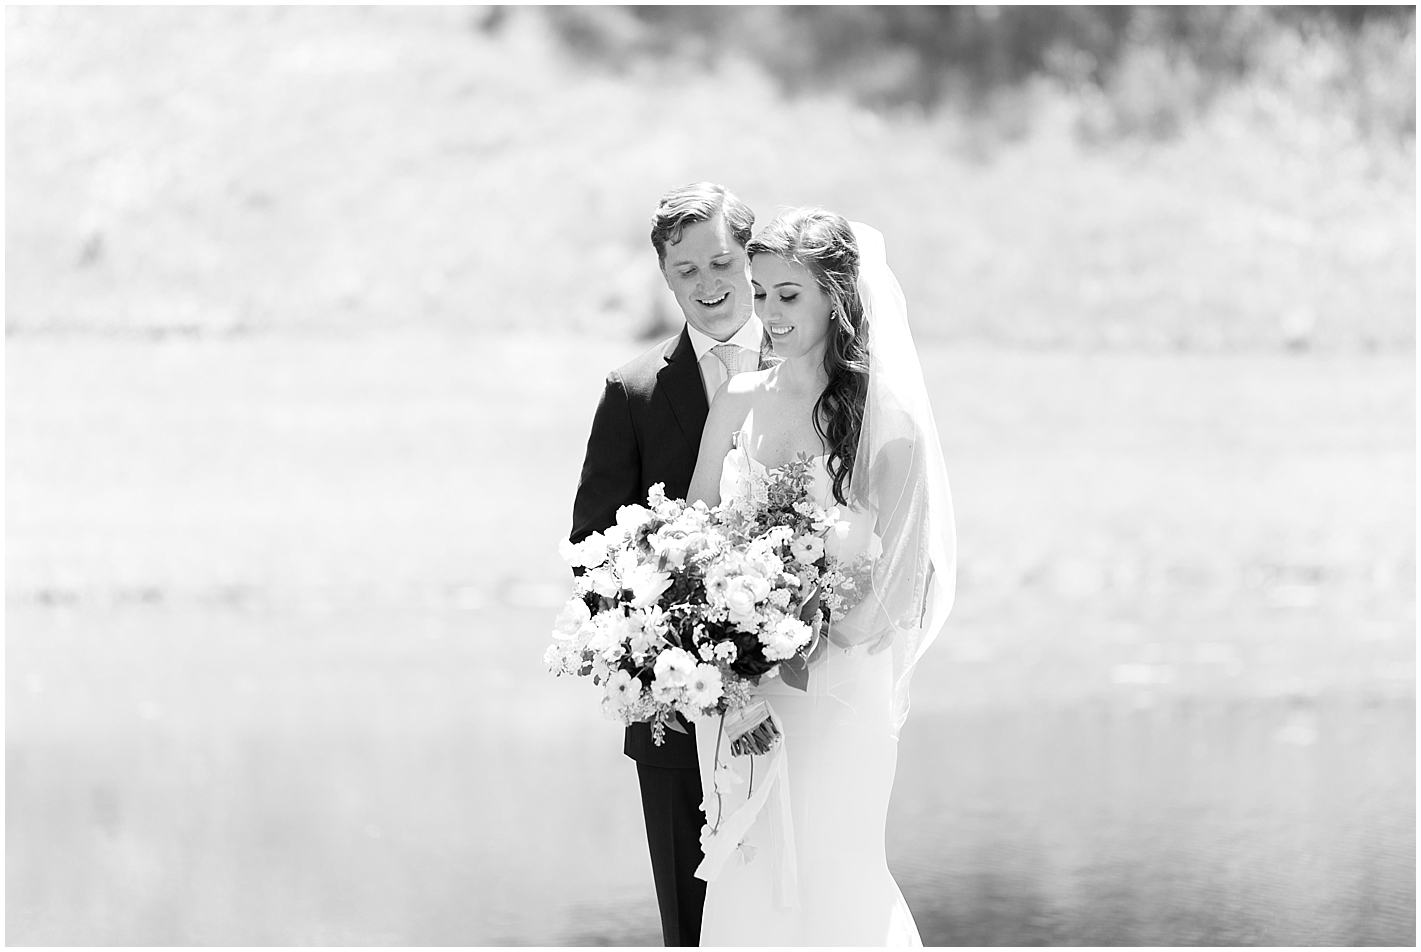 Classic Black and White Wedding Portrait by Alyssa Parker Photography